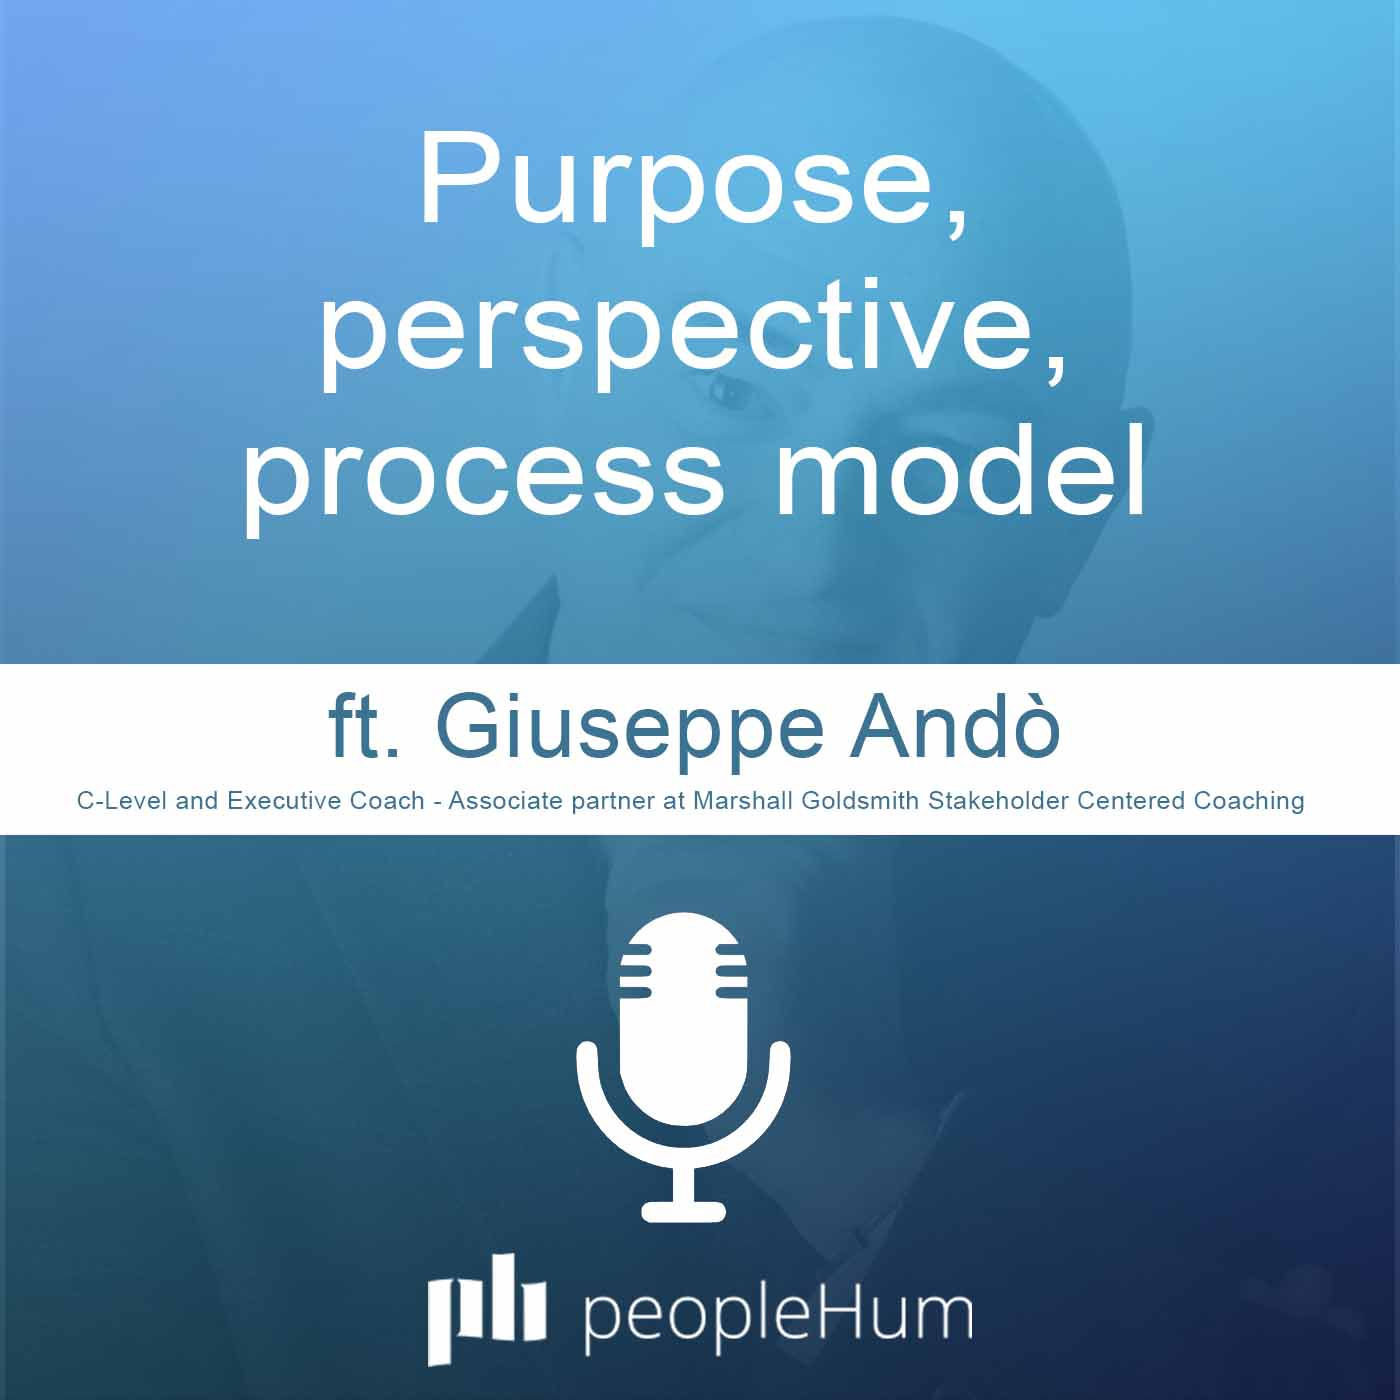 Purpose, perspective, process model, ft. Giuseppe Andò